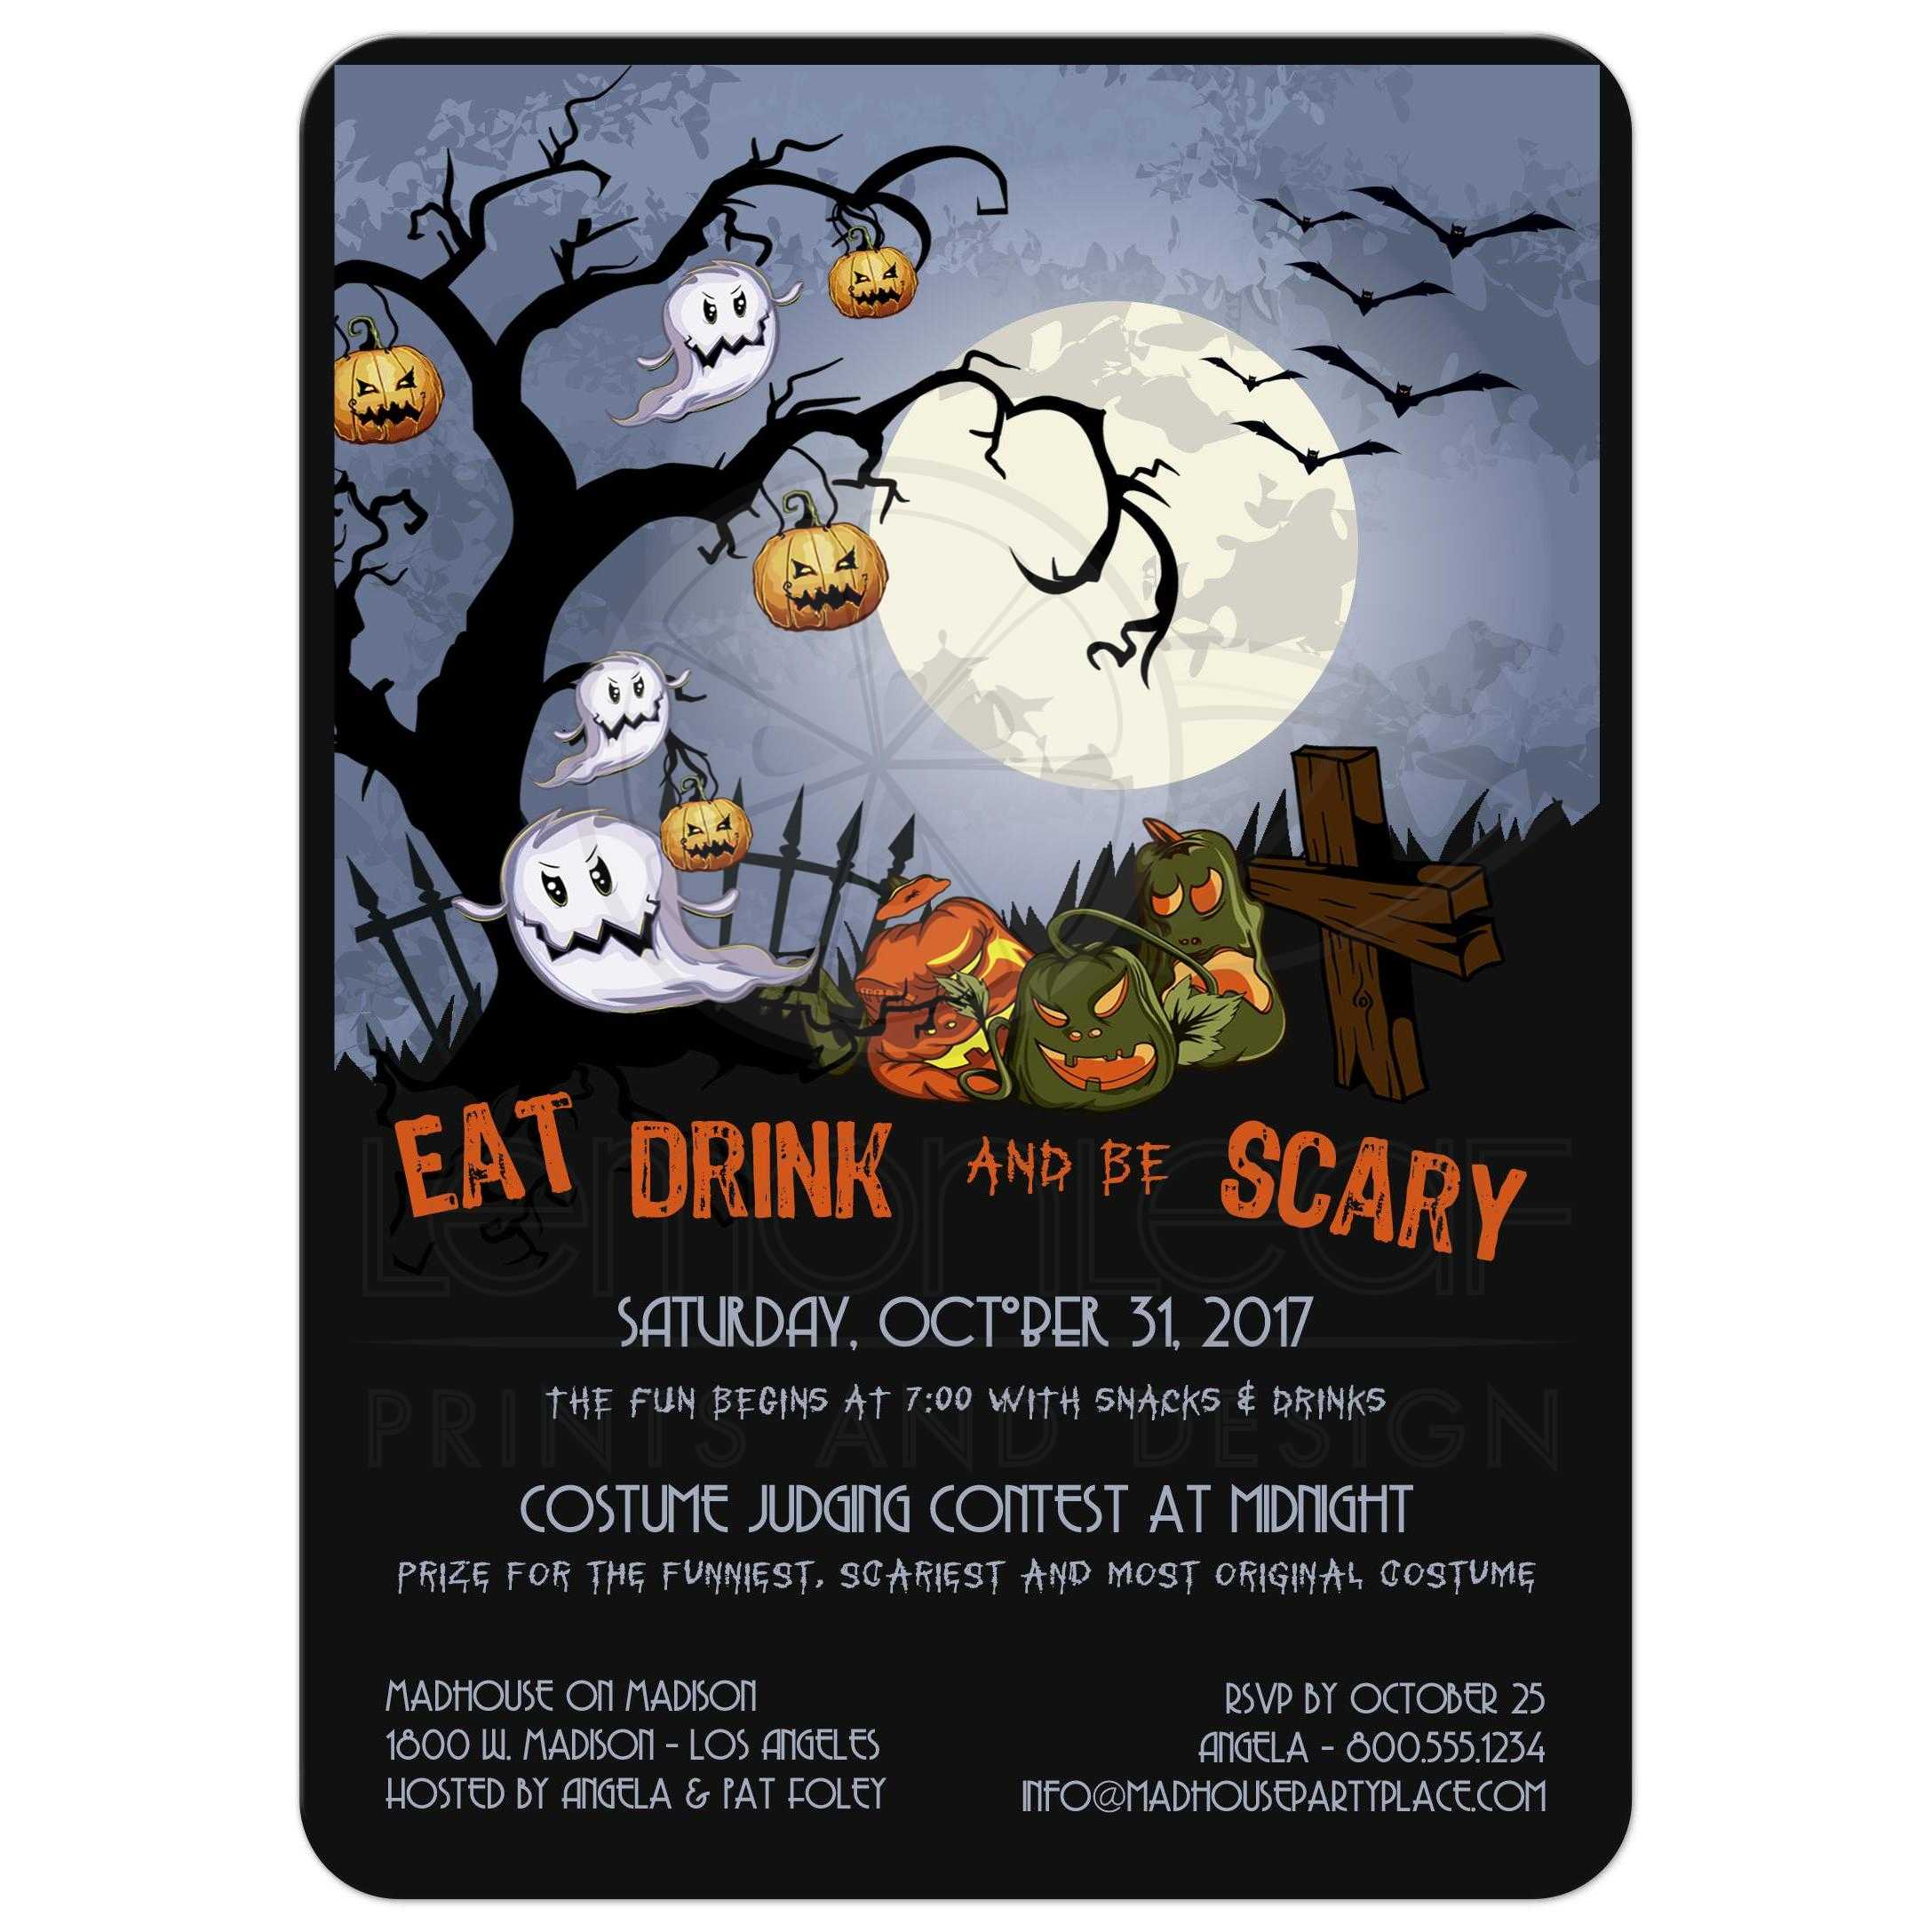 halloween party invites templates - Ecza.solinf.co